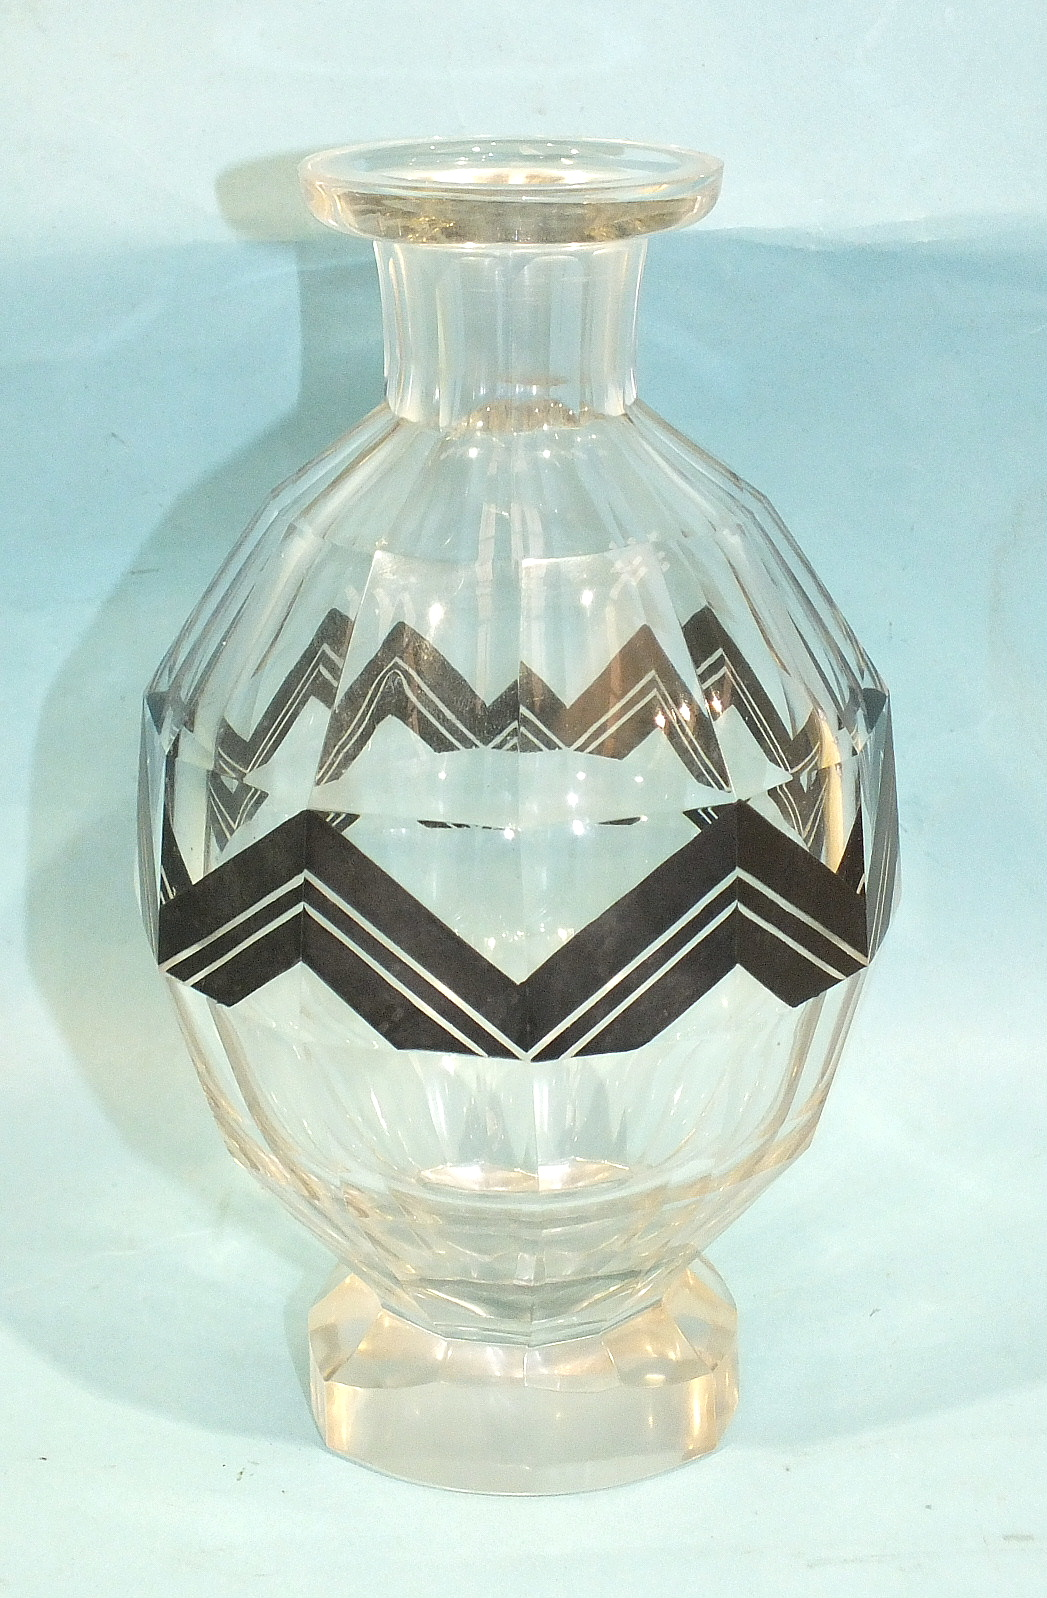 Lot 36 - An Art Deco cut-glass decanter of baluster form, with etched and black-painted decoration, 21cm